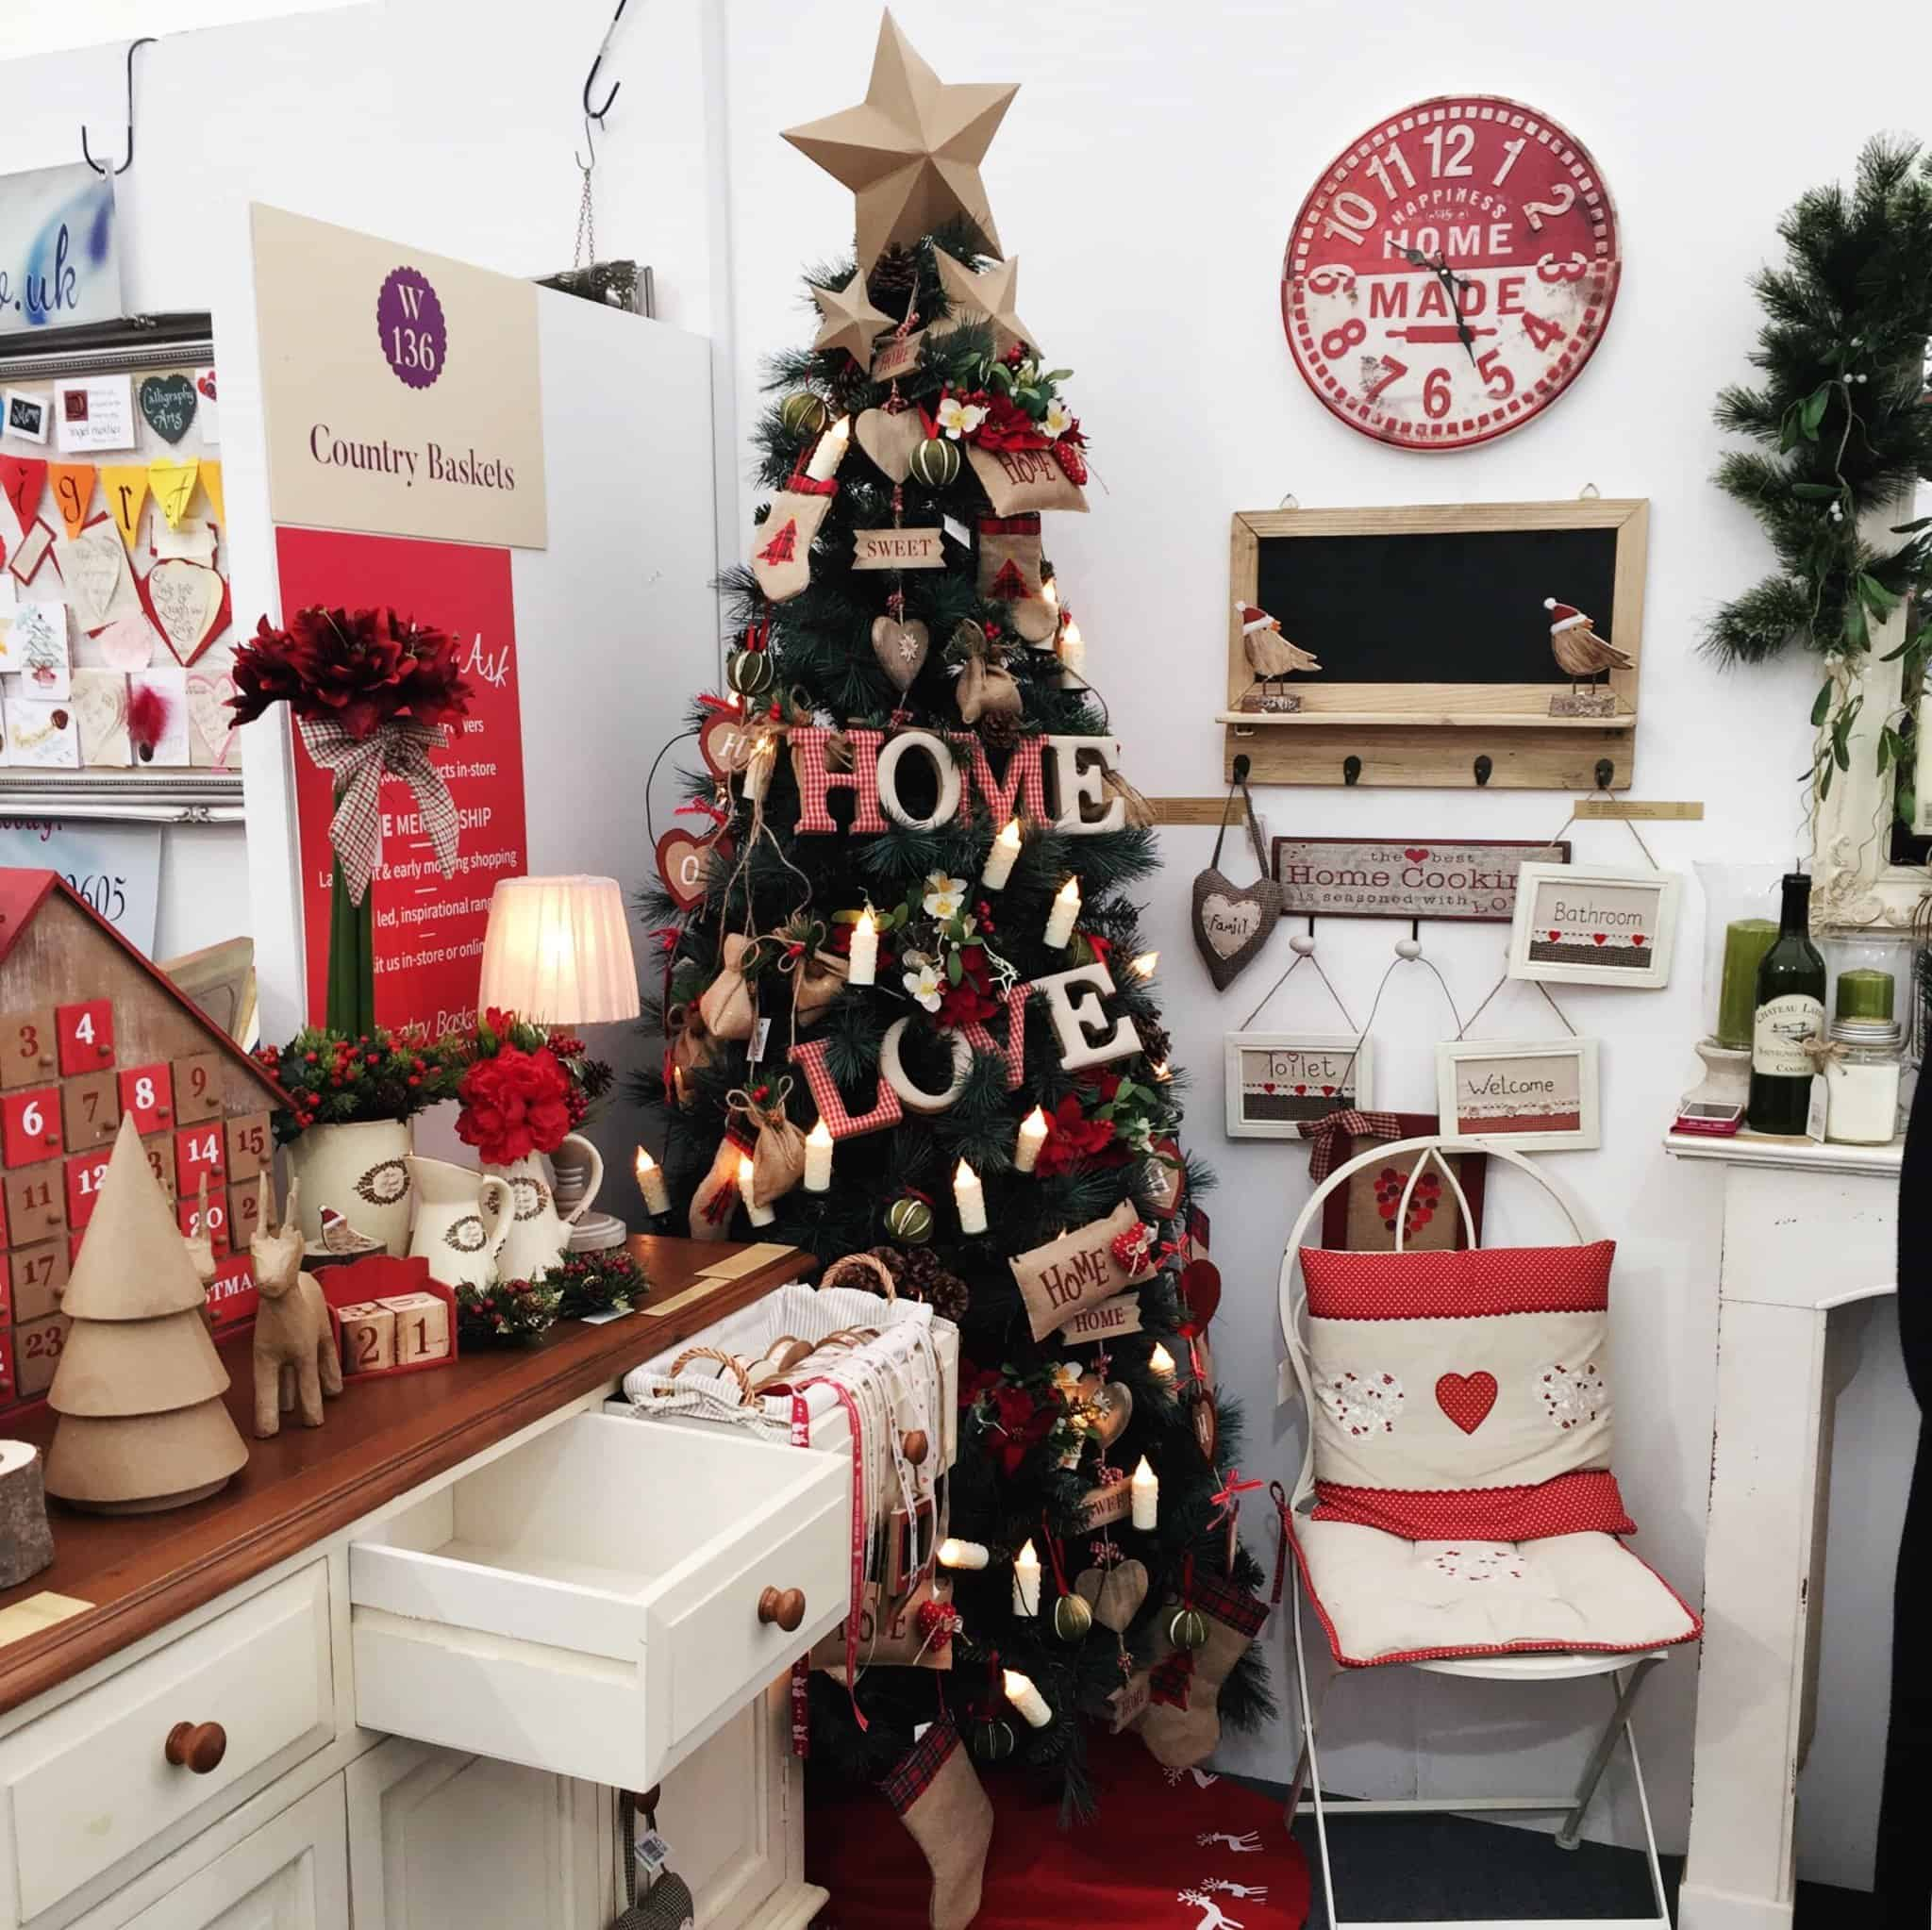 Christmas Corner at The Handmade Fair